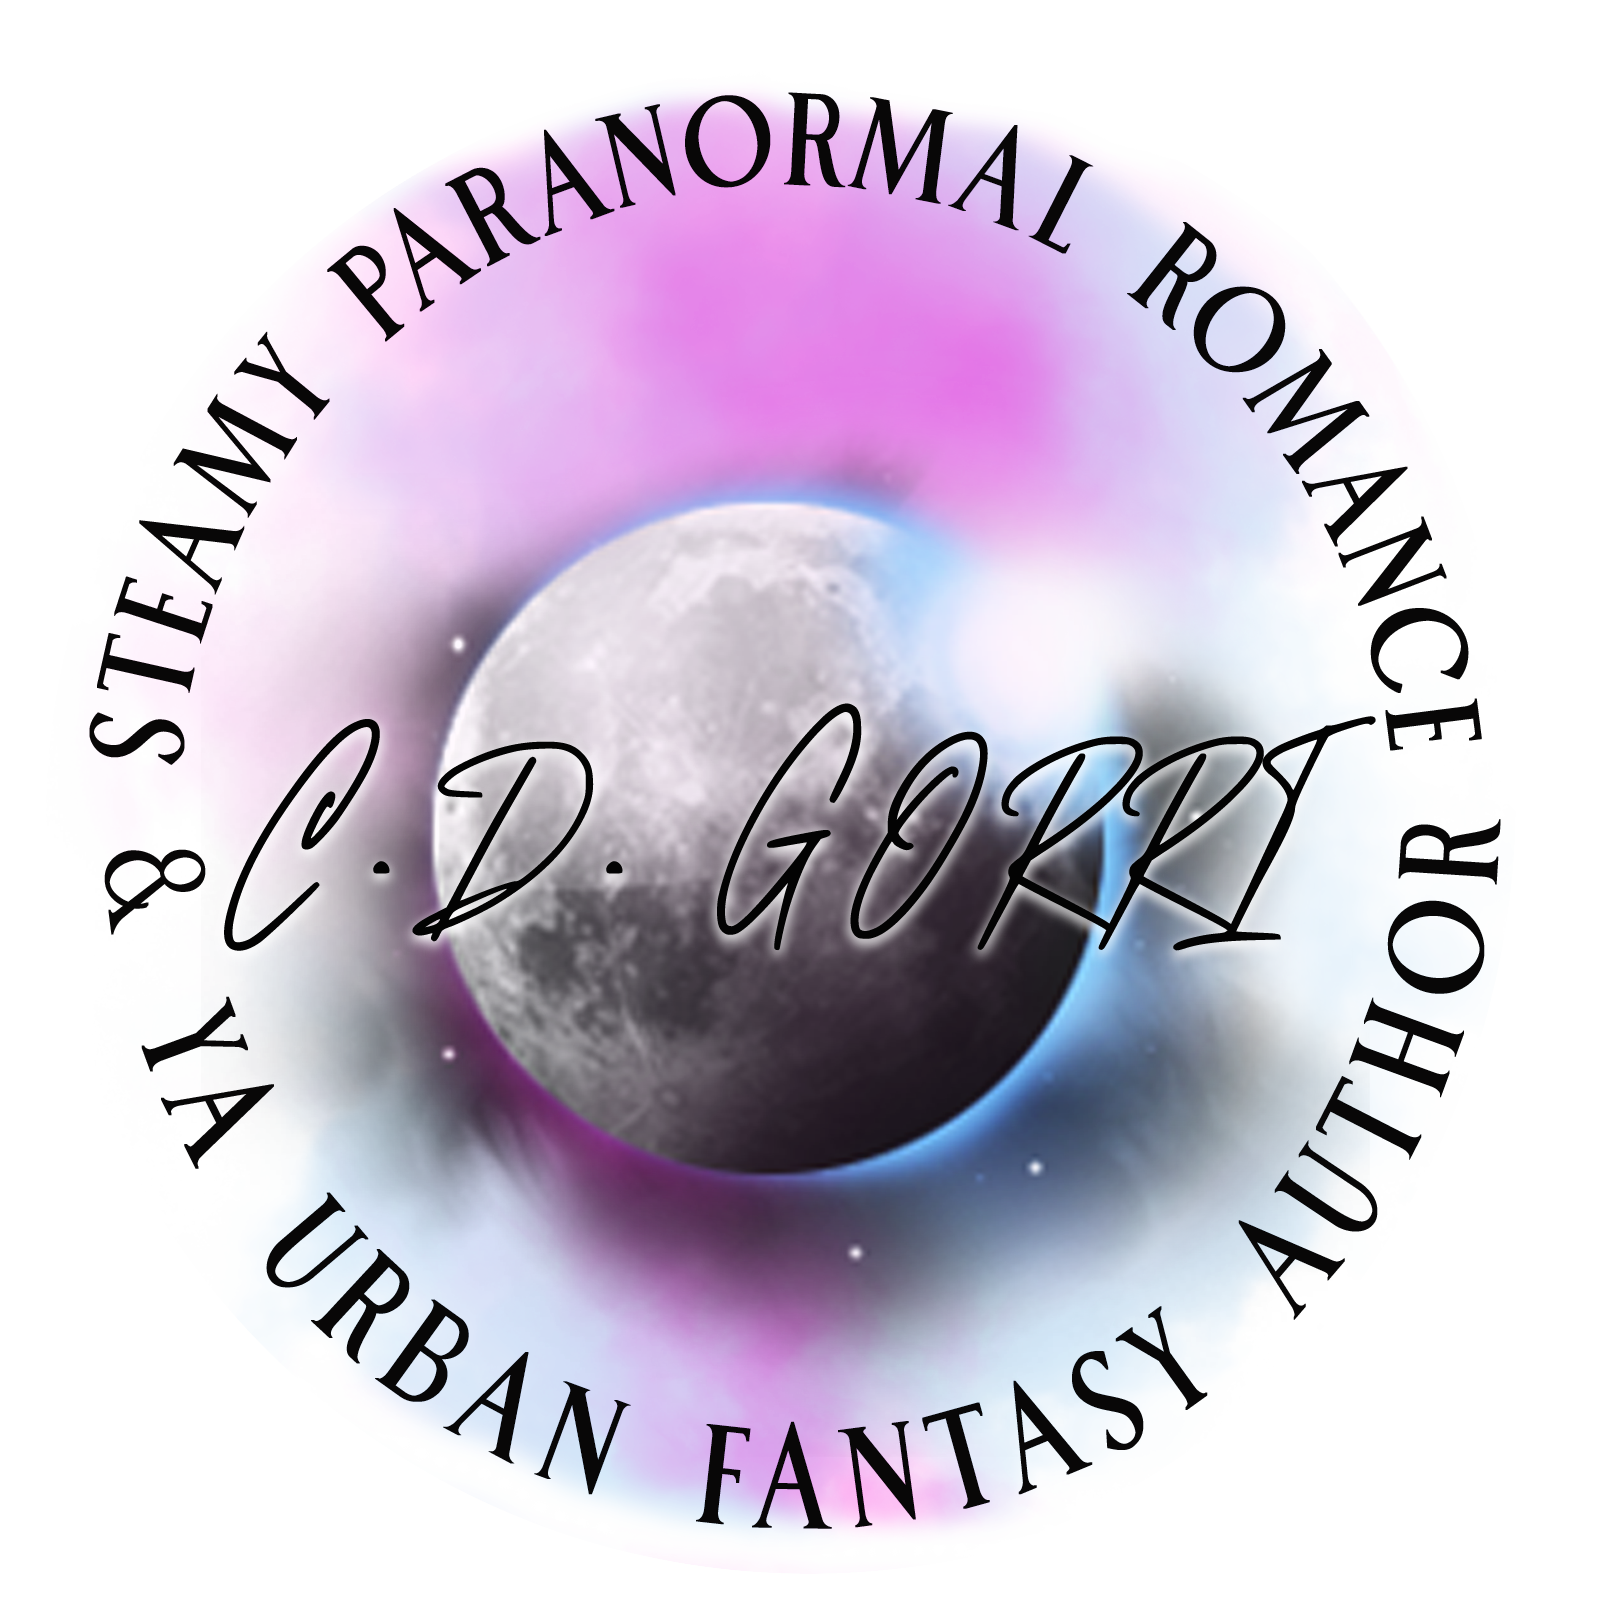 C.D. Gorri, Paranormal Romance YA Urban Fantasy Author